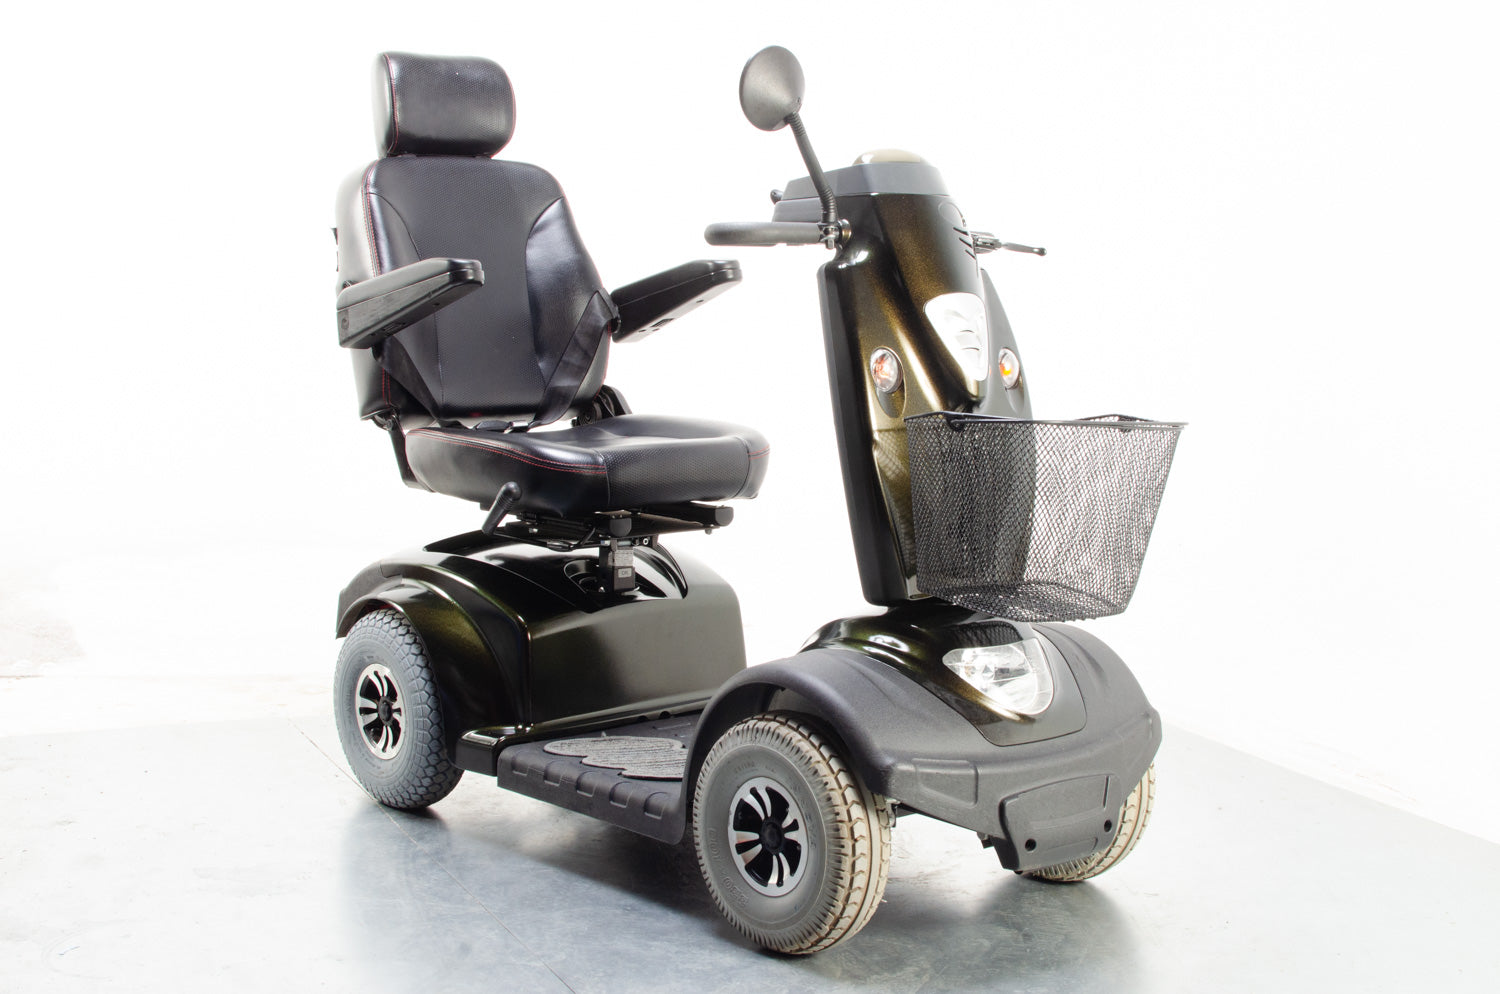 2015 TGA Mystere 8mph Mid Size Mobility Scooter Green Gold Chameleon